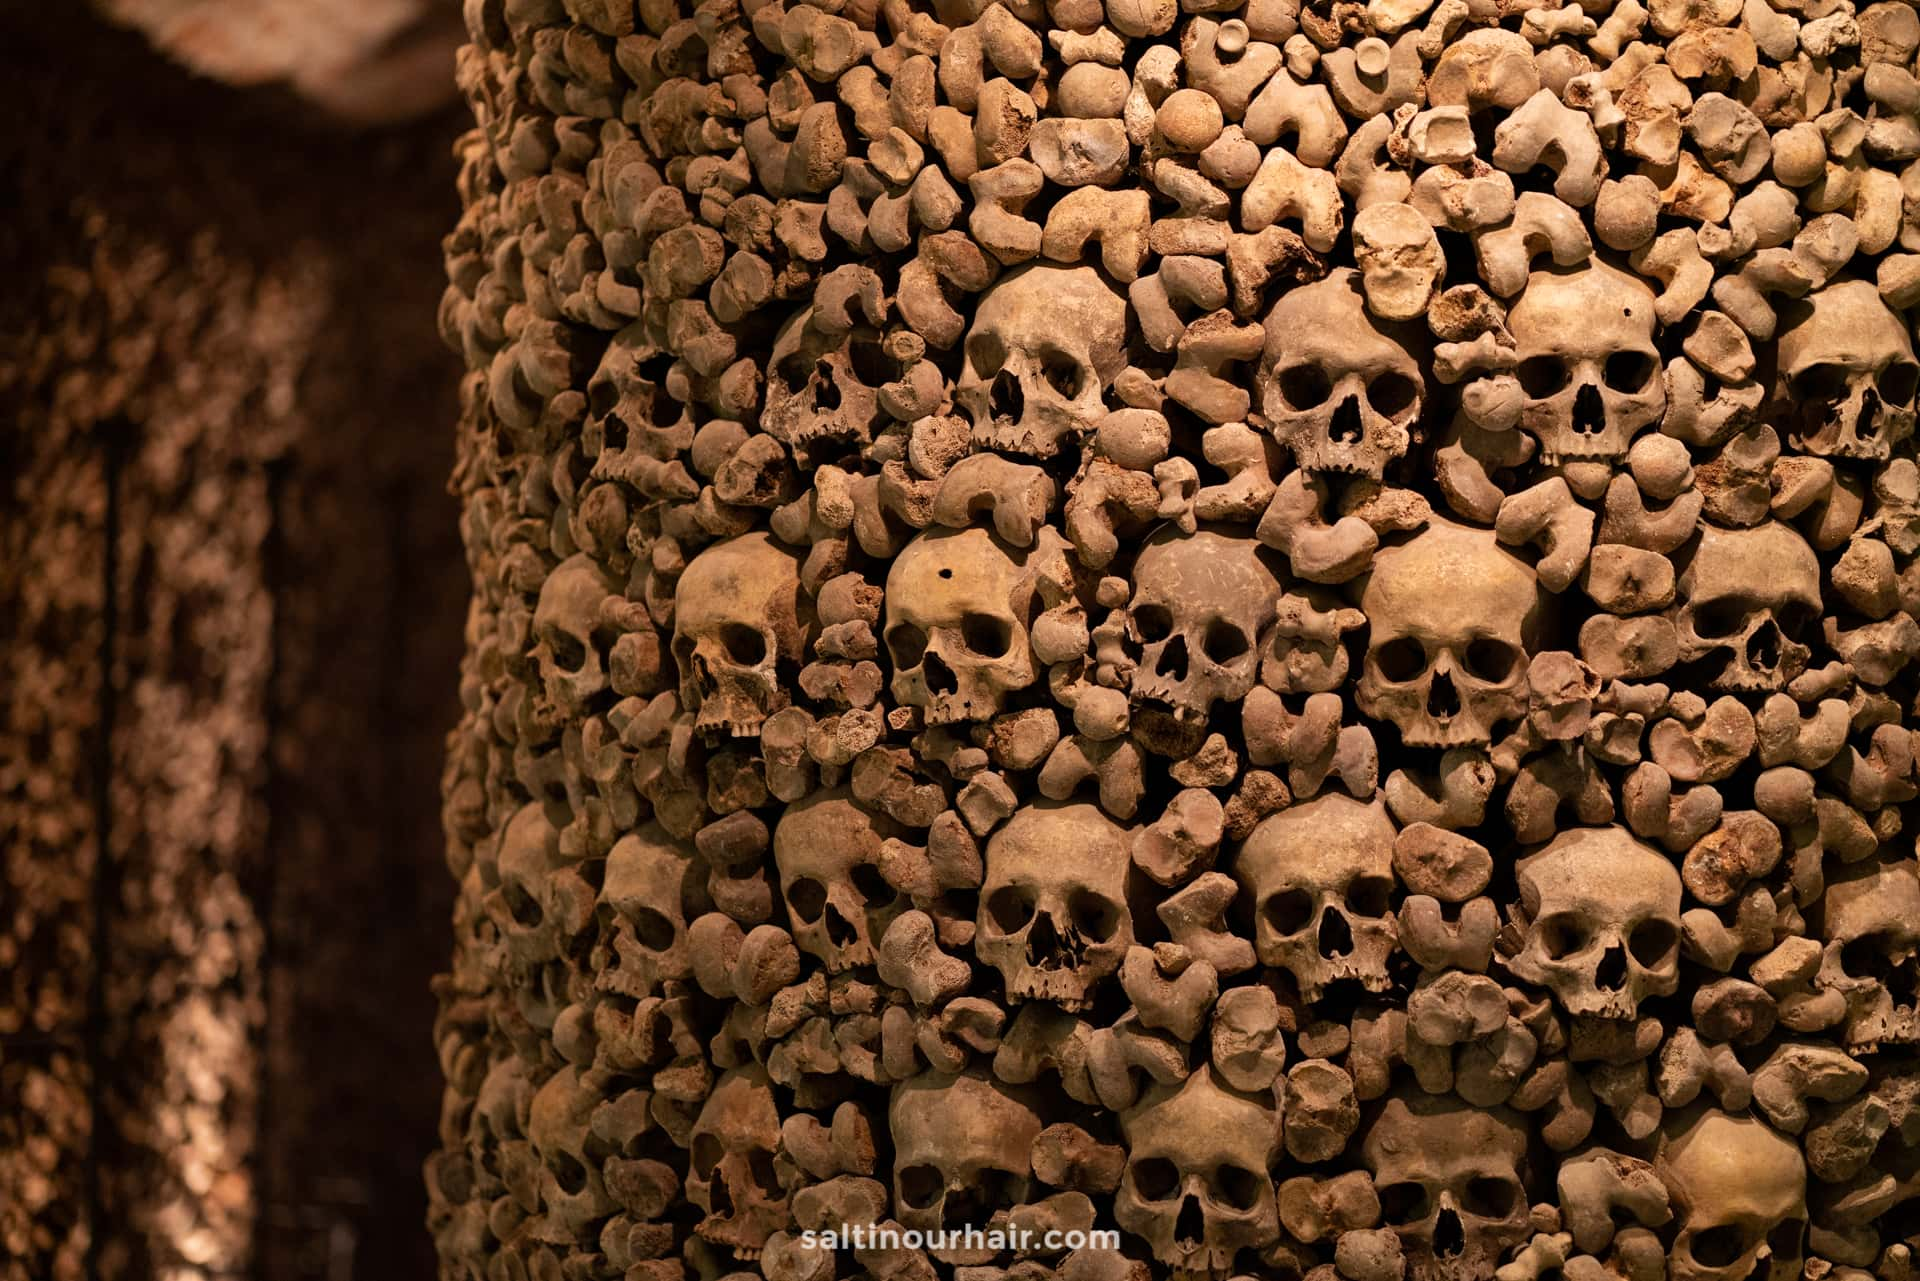 brno czech republic St James Church Ossuary